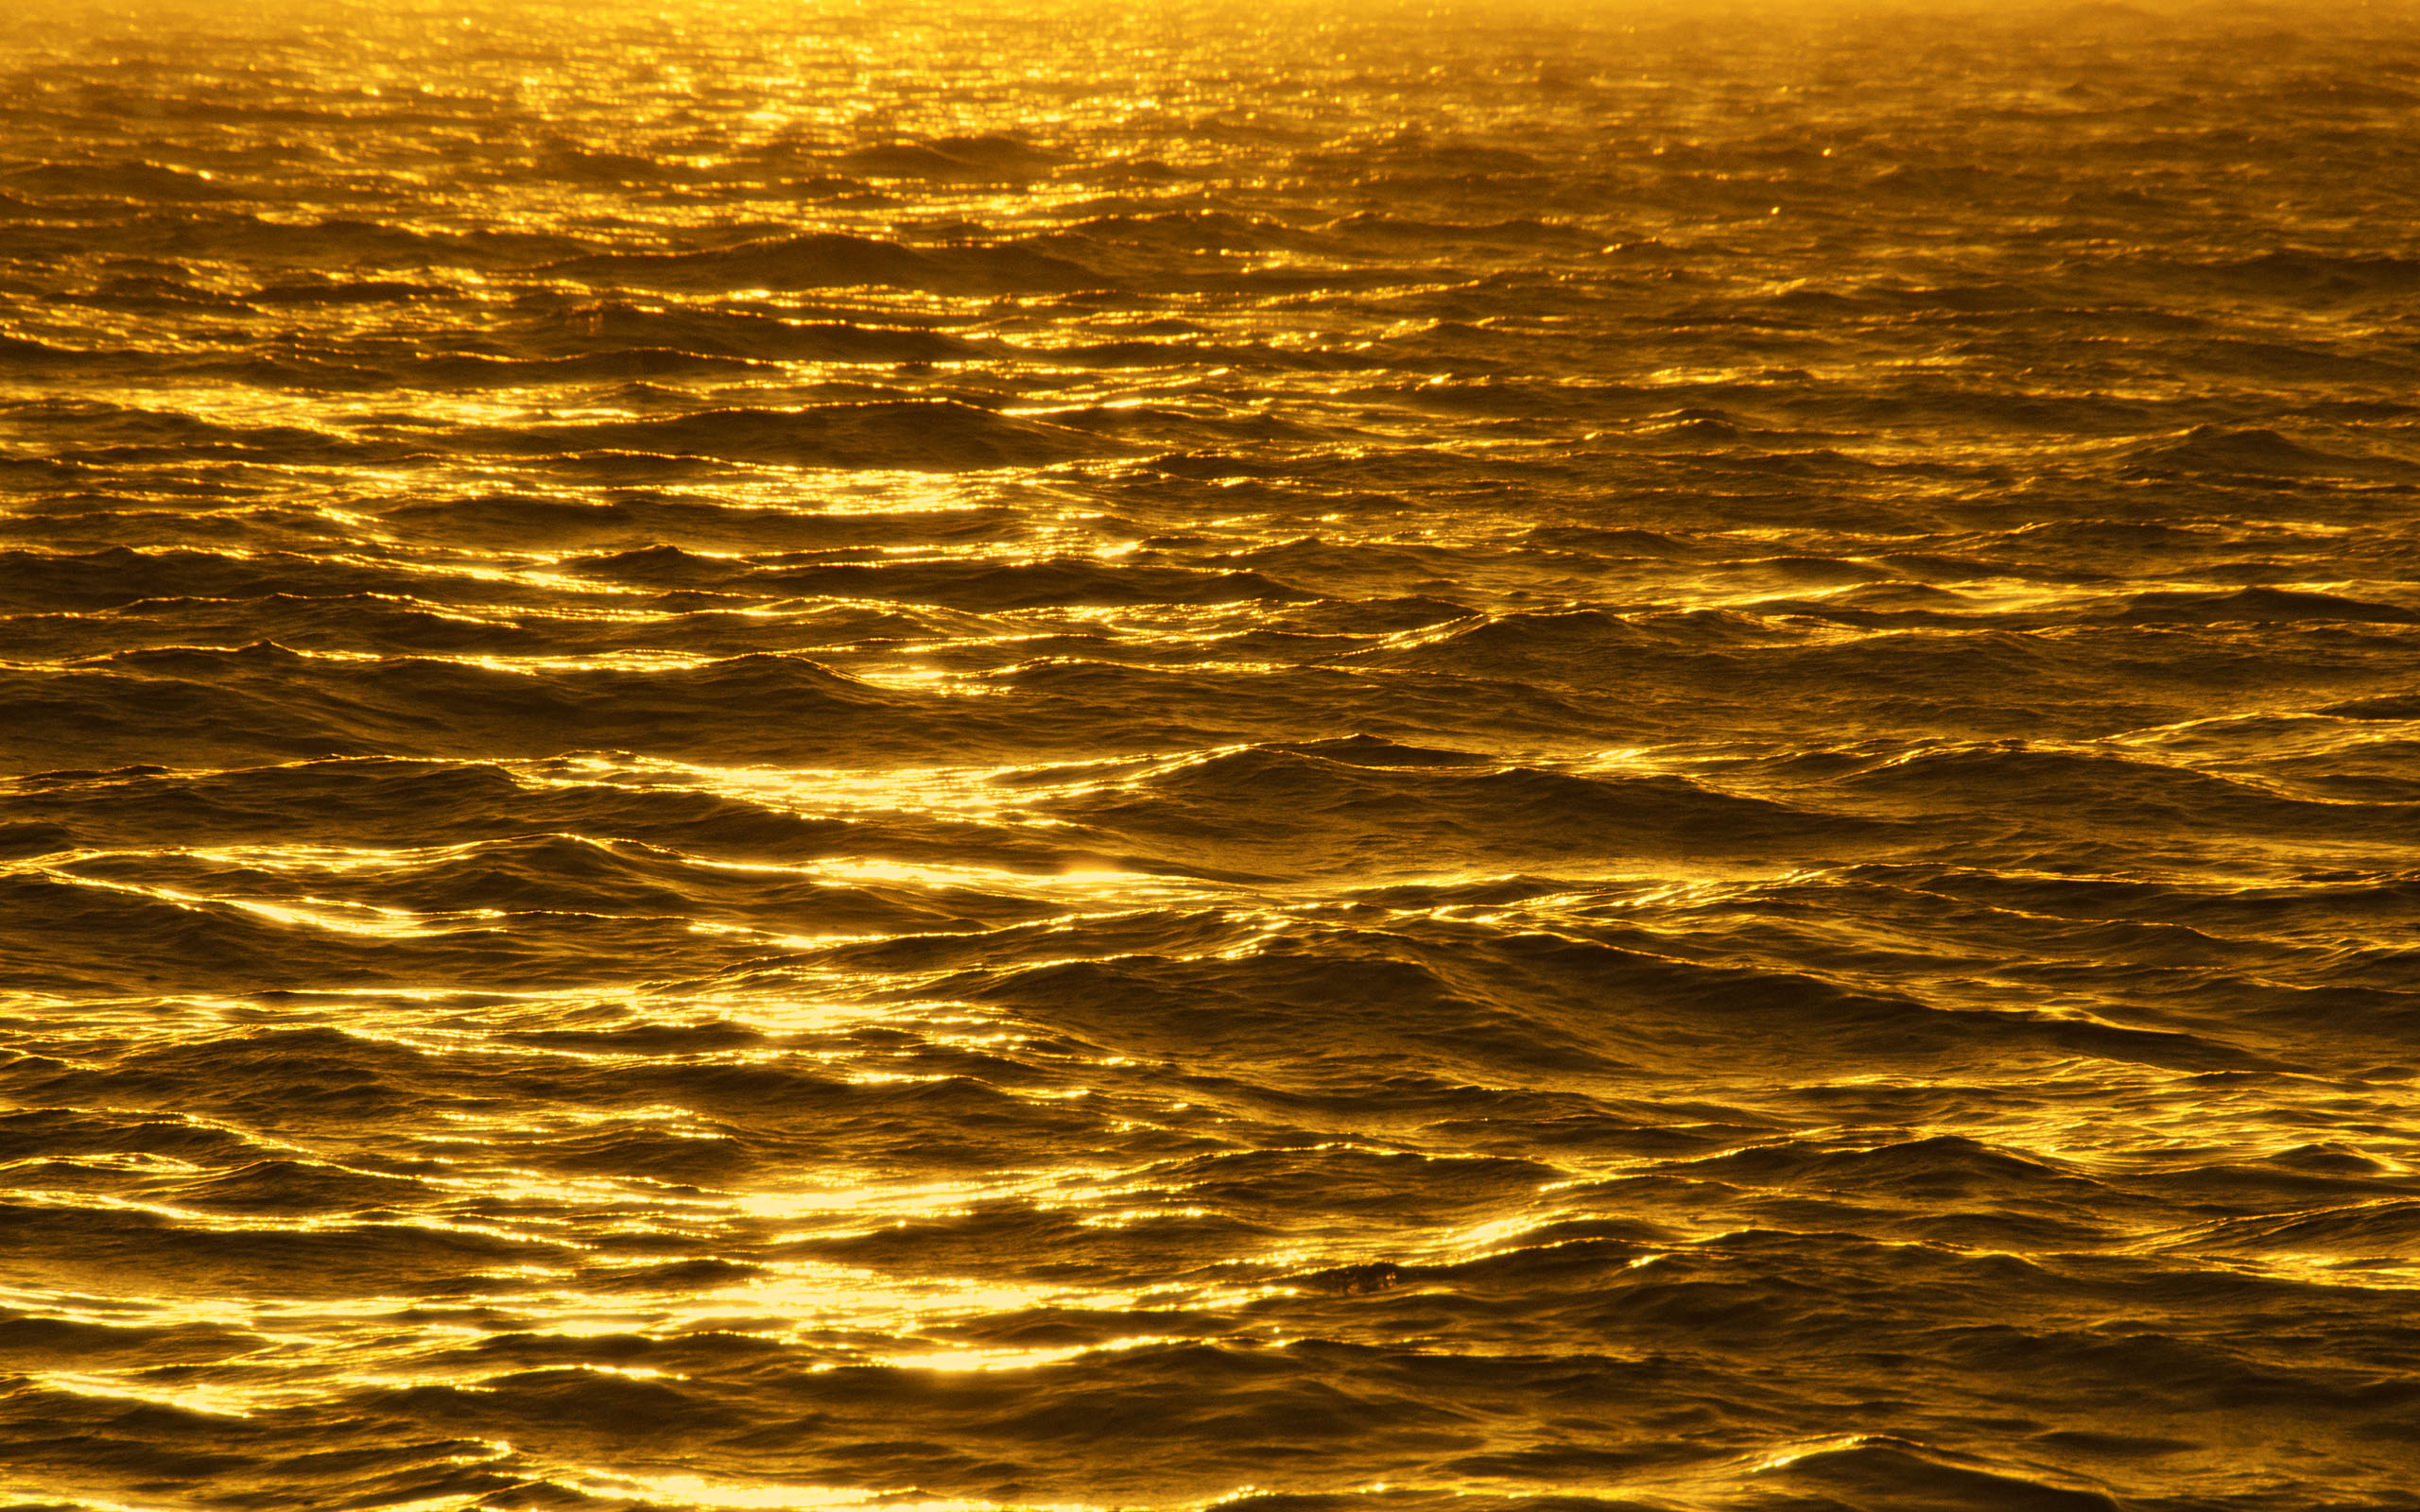 Gold Wallpapers ocean